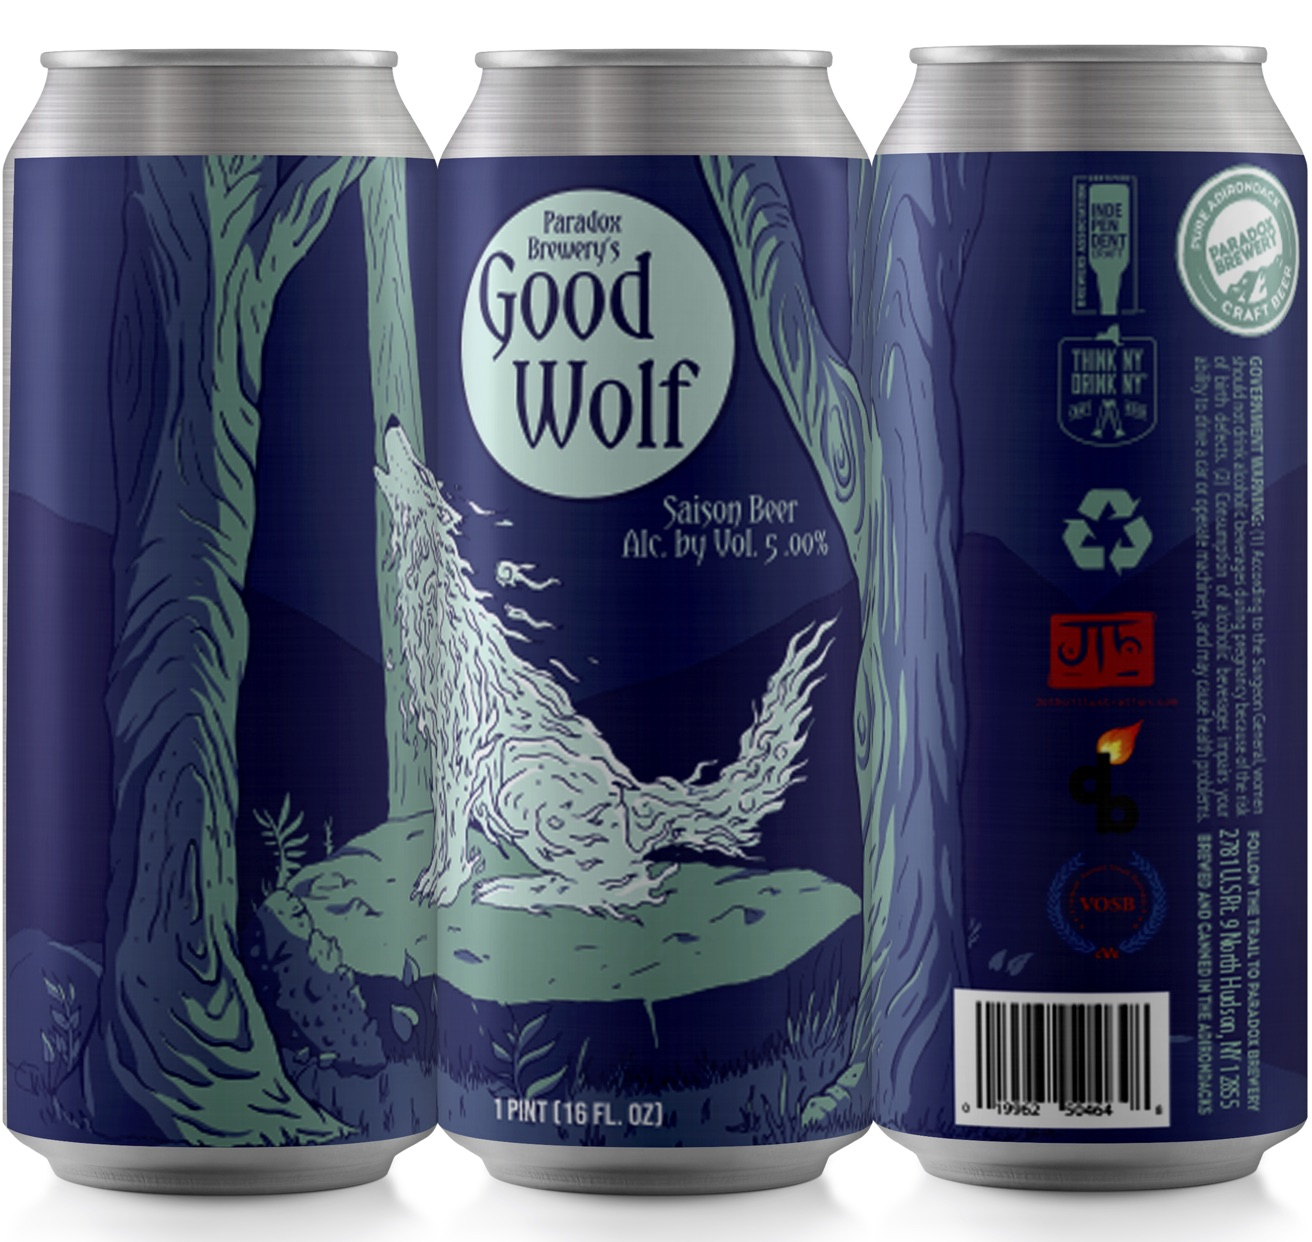 paradox brewery cans of good wolf beer